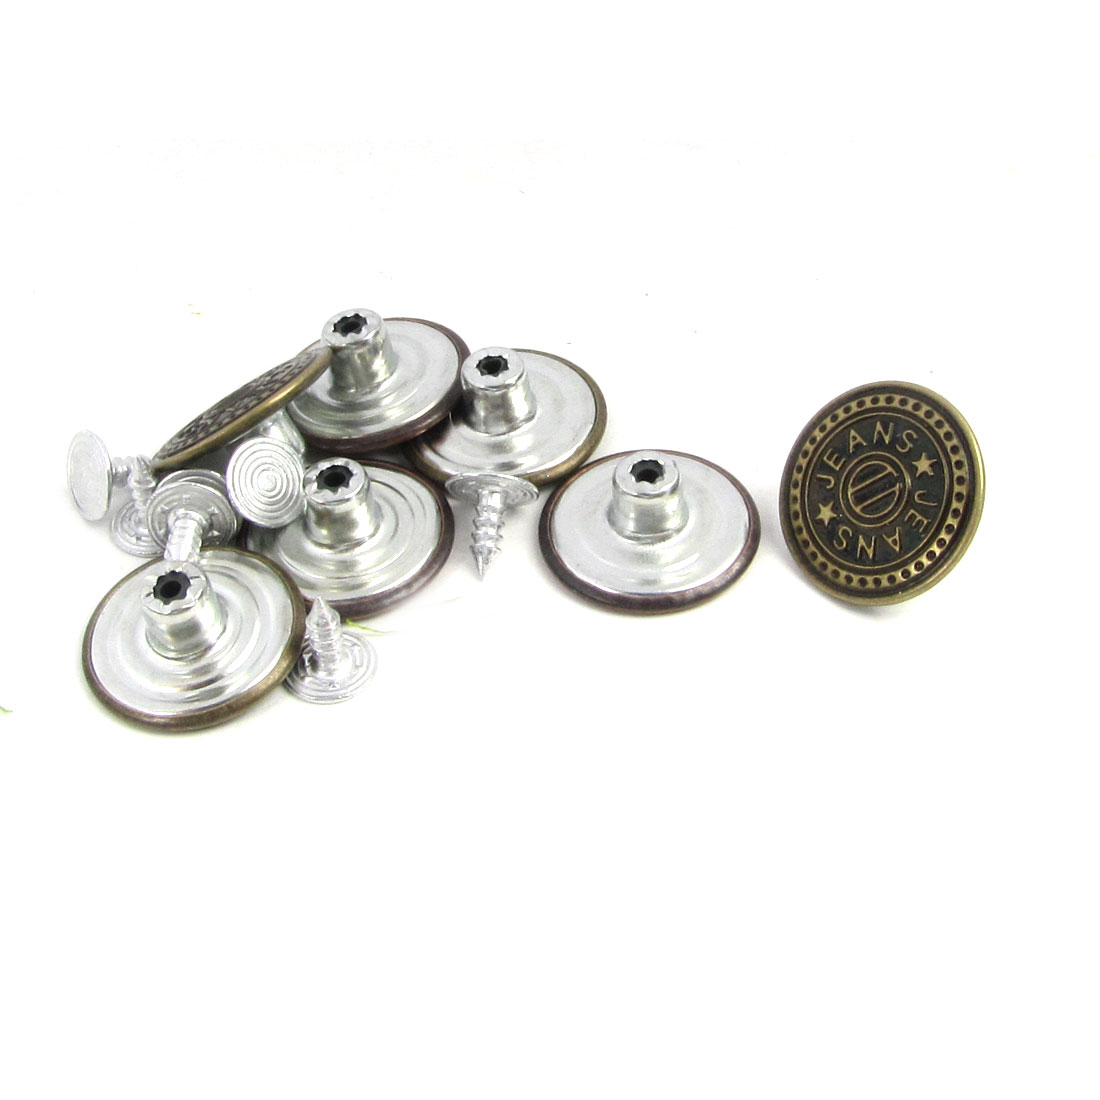 7 Pcs Bronze Tone Letter Pattern Metallic Tack Buttons Rivet for Jeans